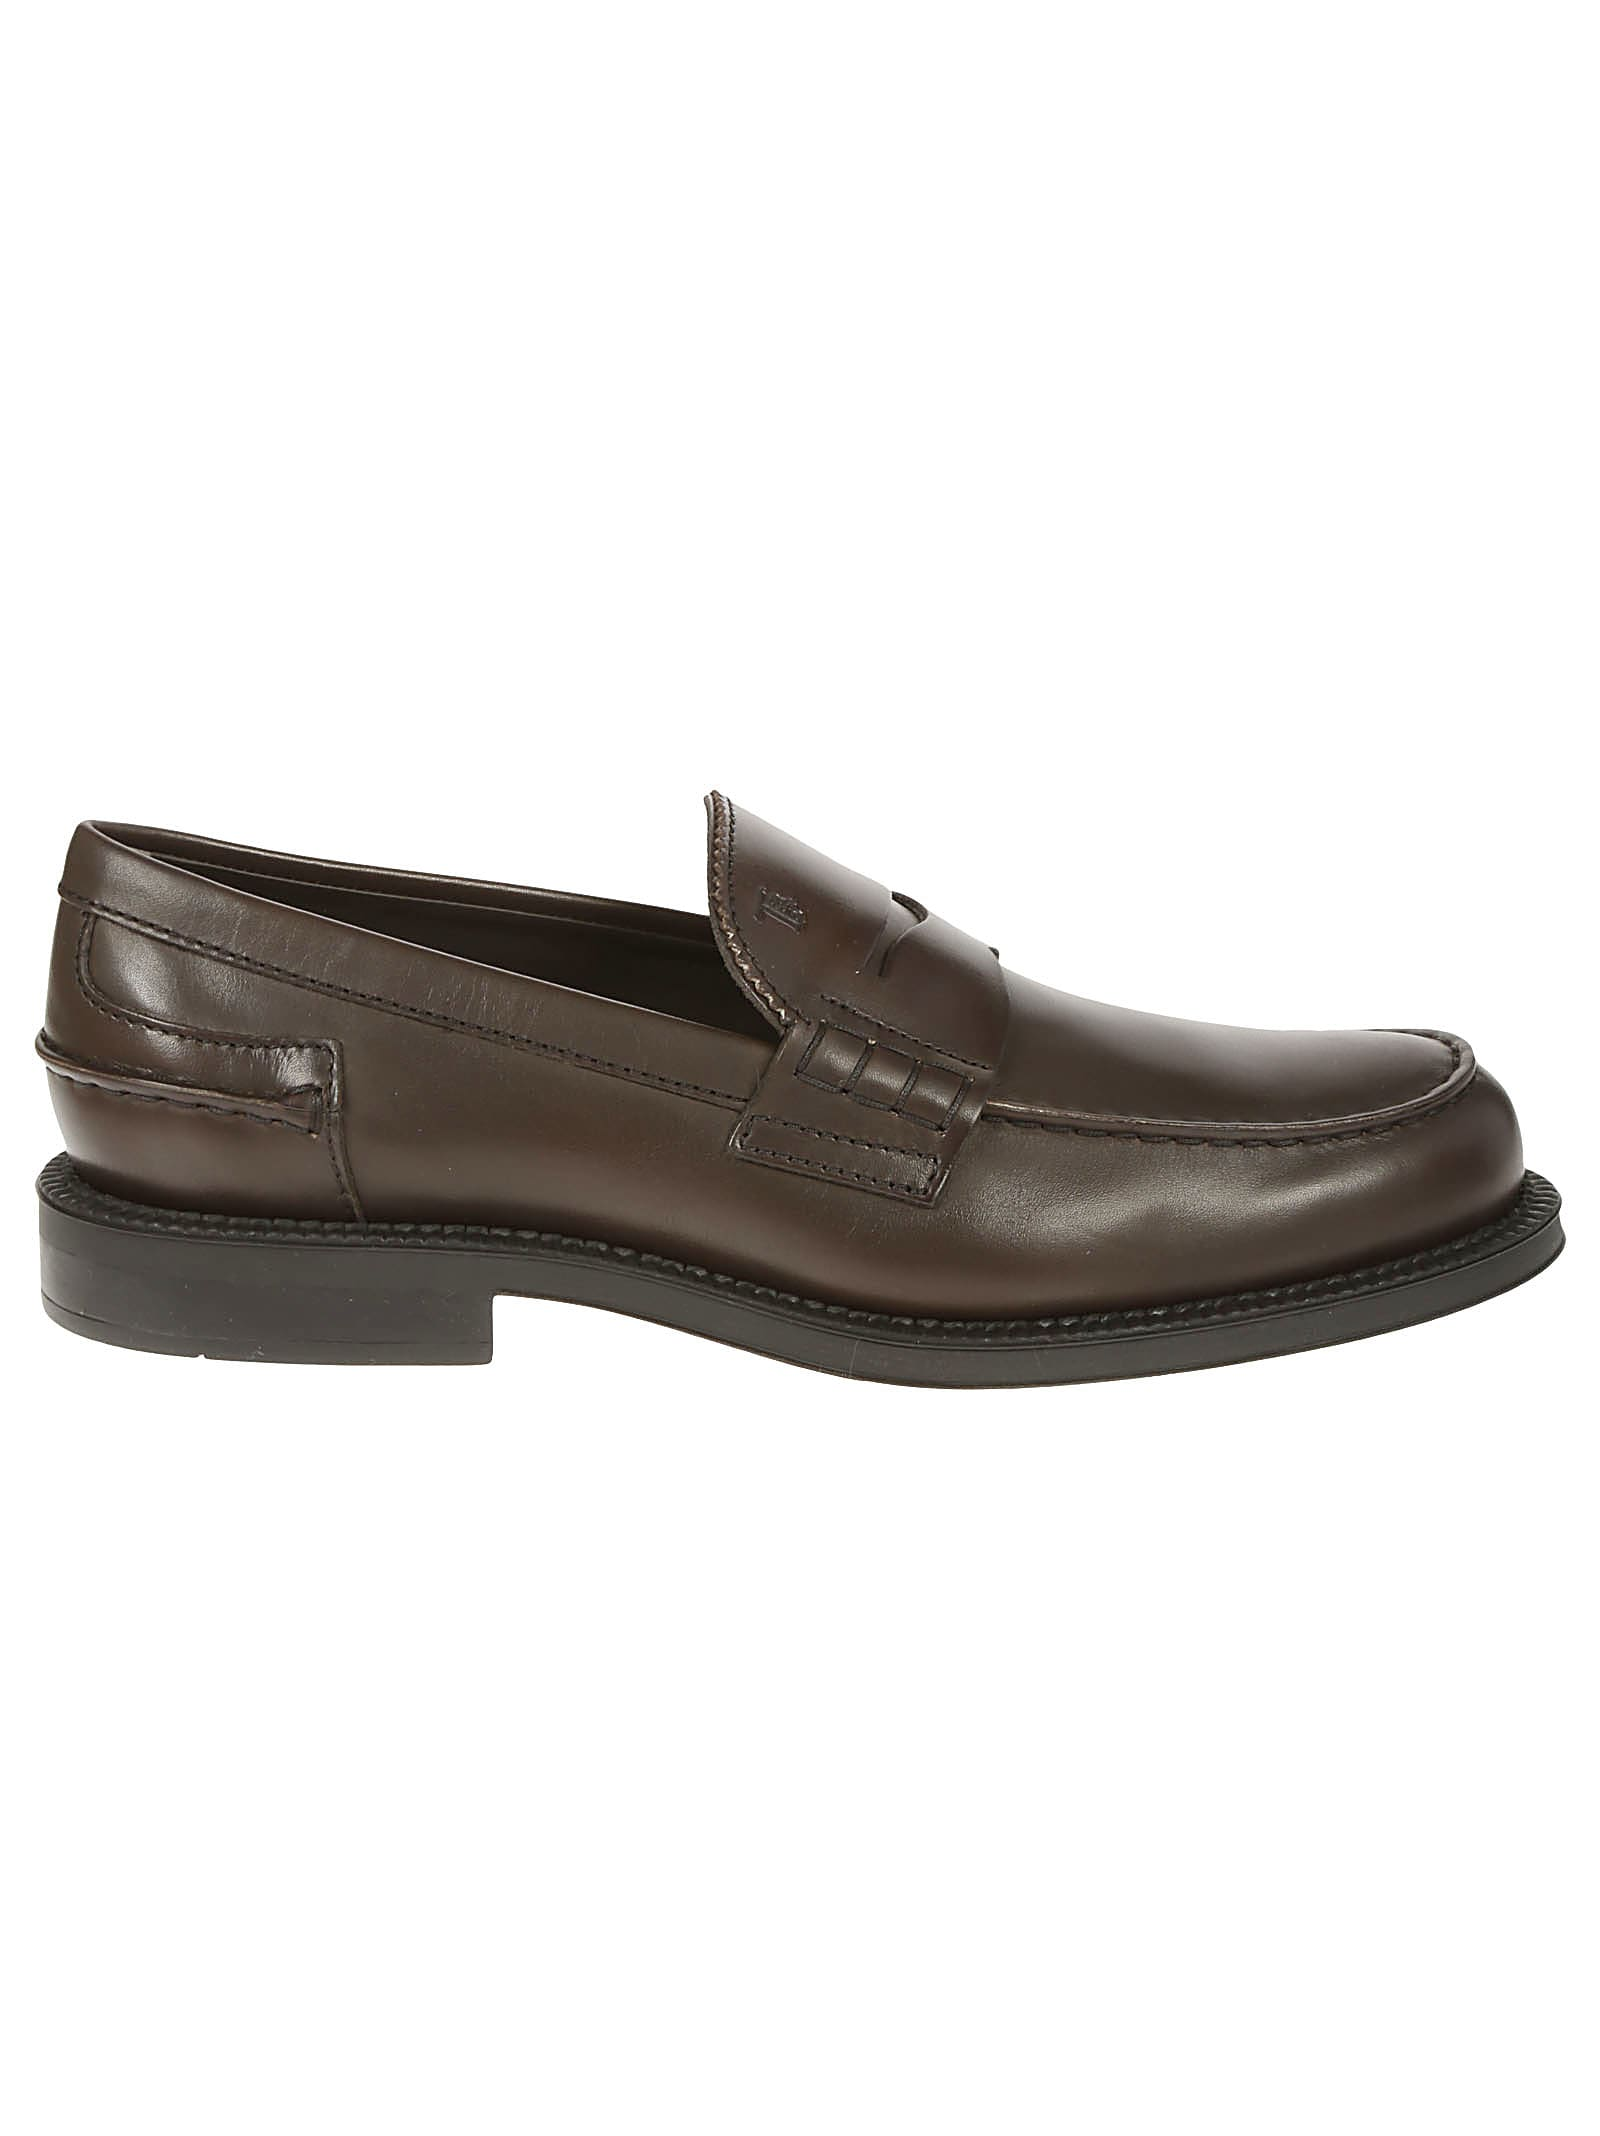 Slide-on Moccasin Loafers Tods